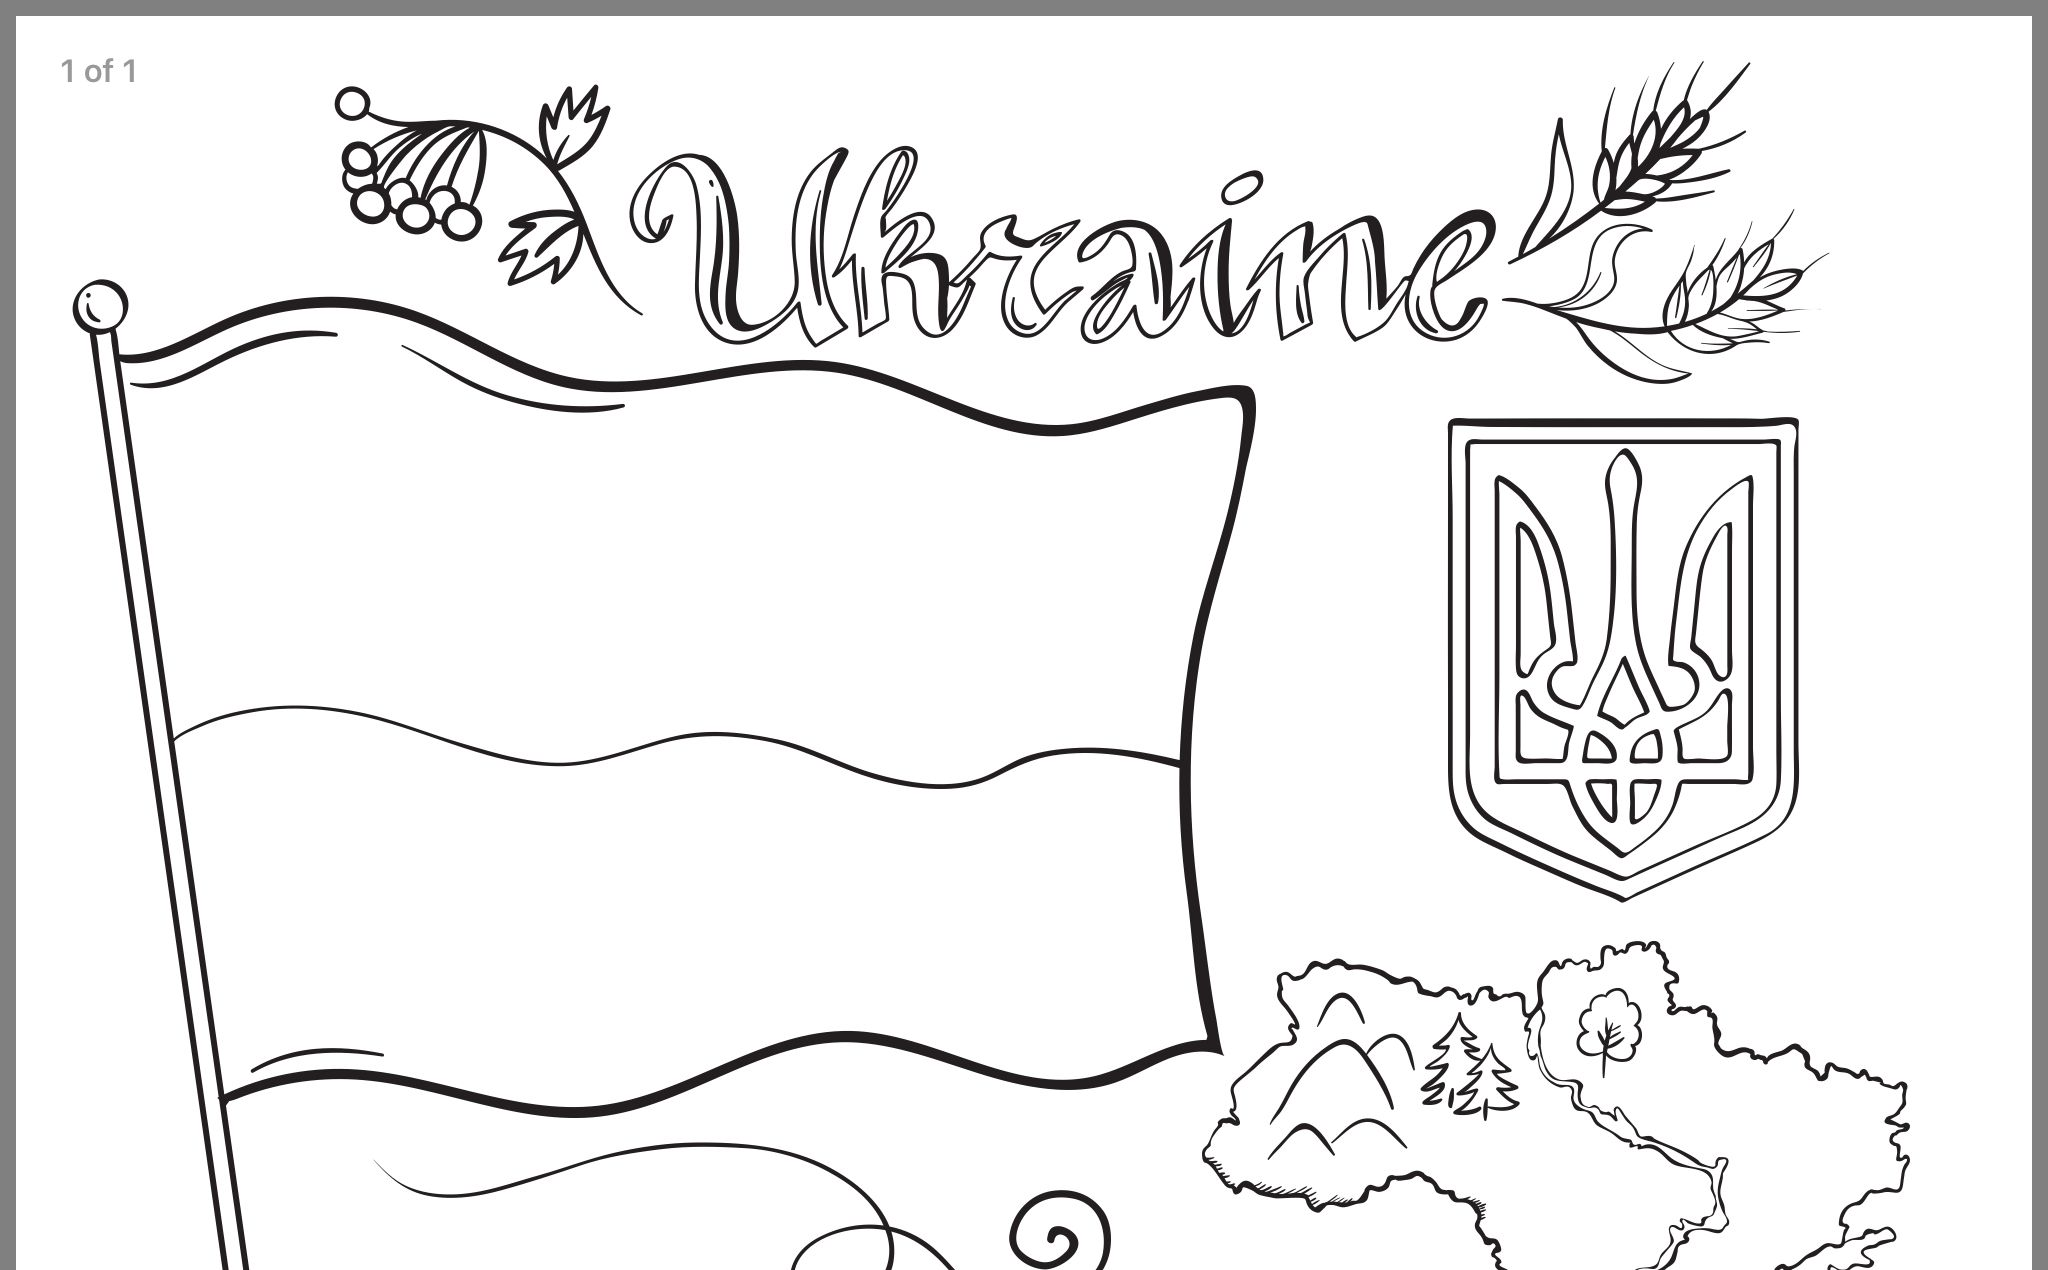 Pin By Lilyasia On Ukrainian Flag Coloring Pages Coloring Pages Free Printable Coloring Pages